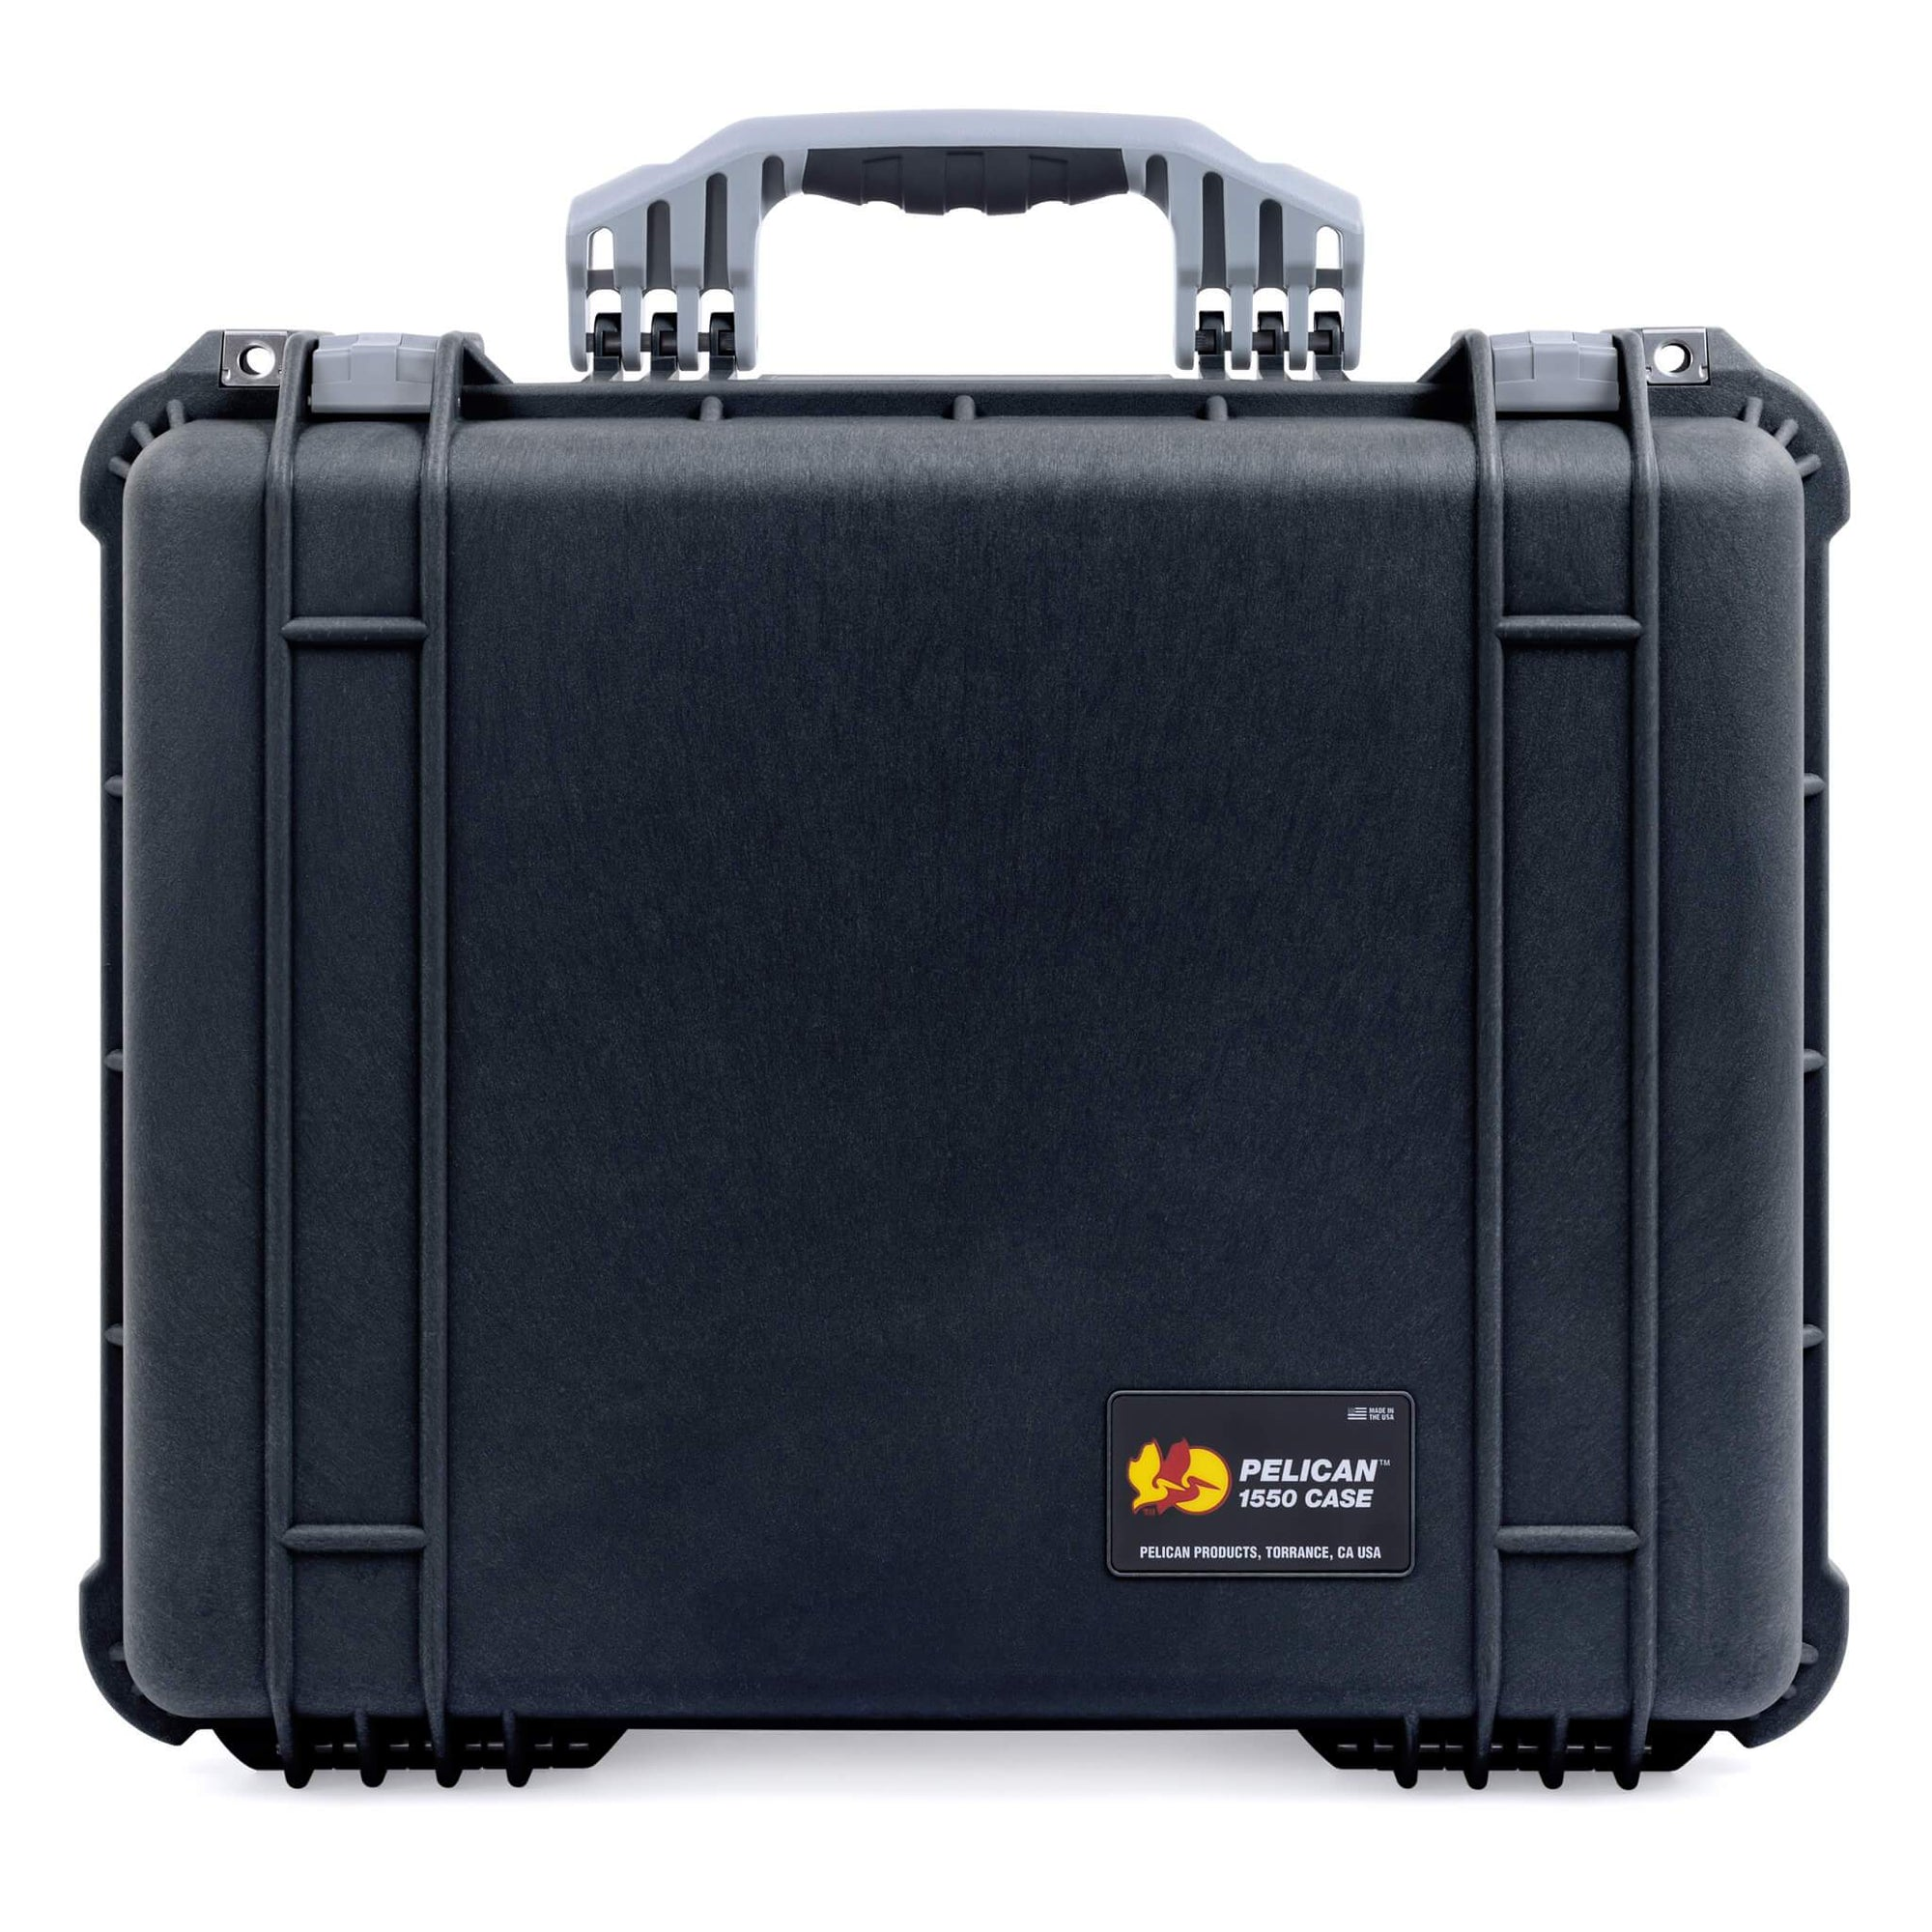 Pelican 1550 Case, Black with Silver Handle & Latches